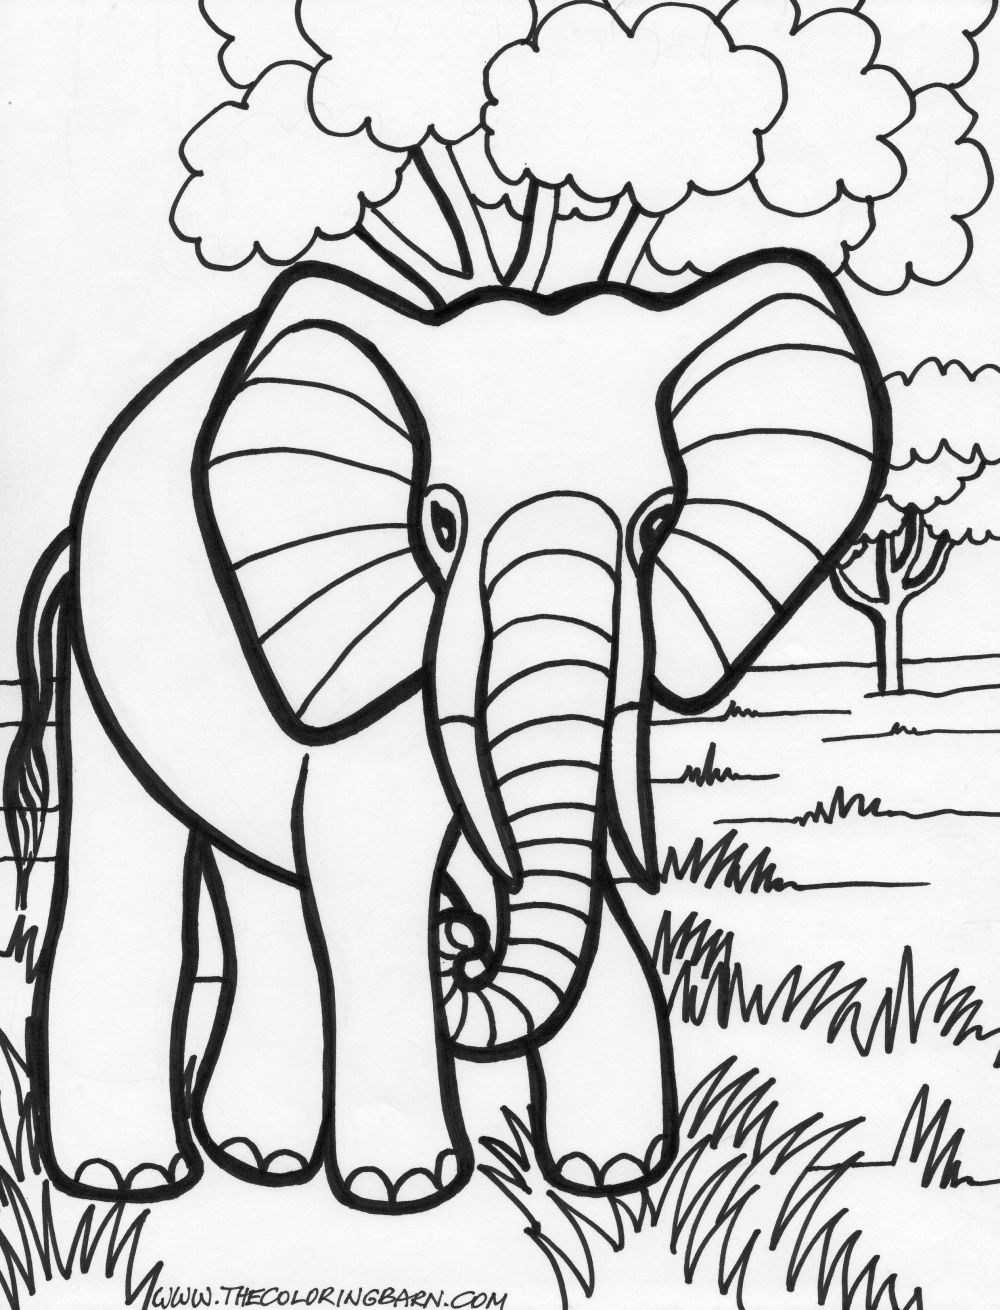 elephant coloring sheets printable transmissionpress 14 elephant coloring pages for kids elephant coloring printable sheets